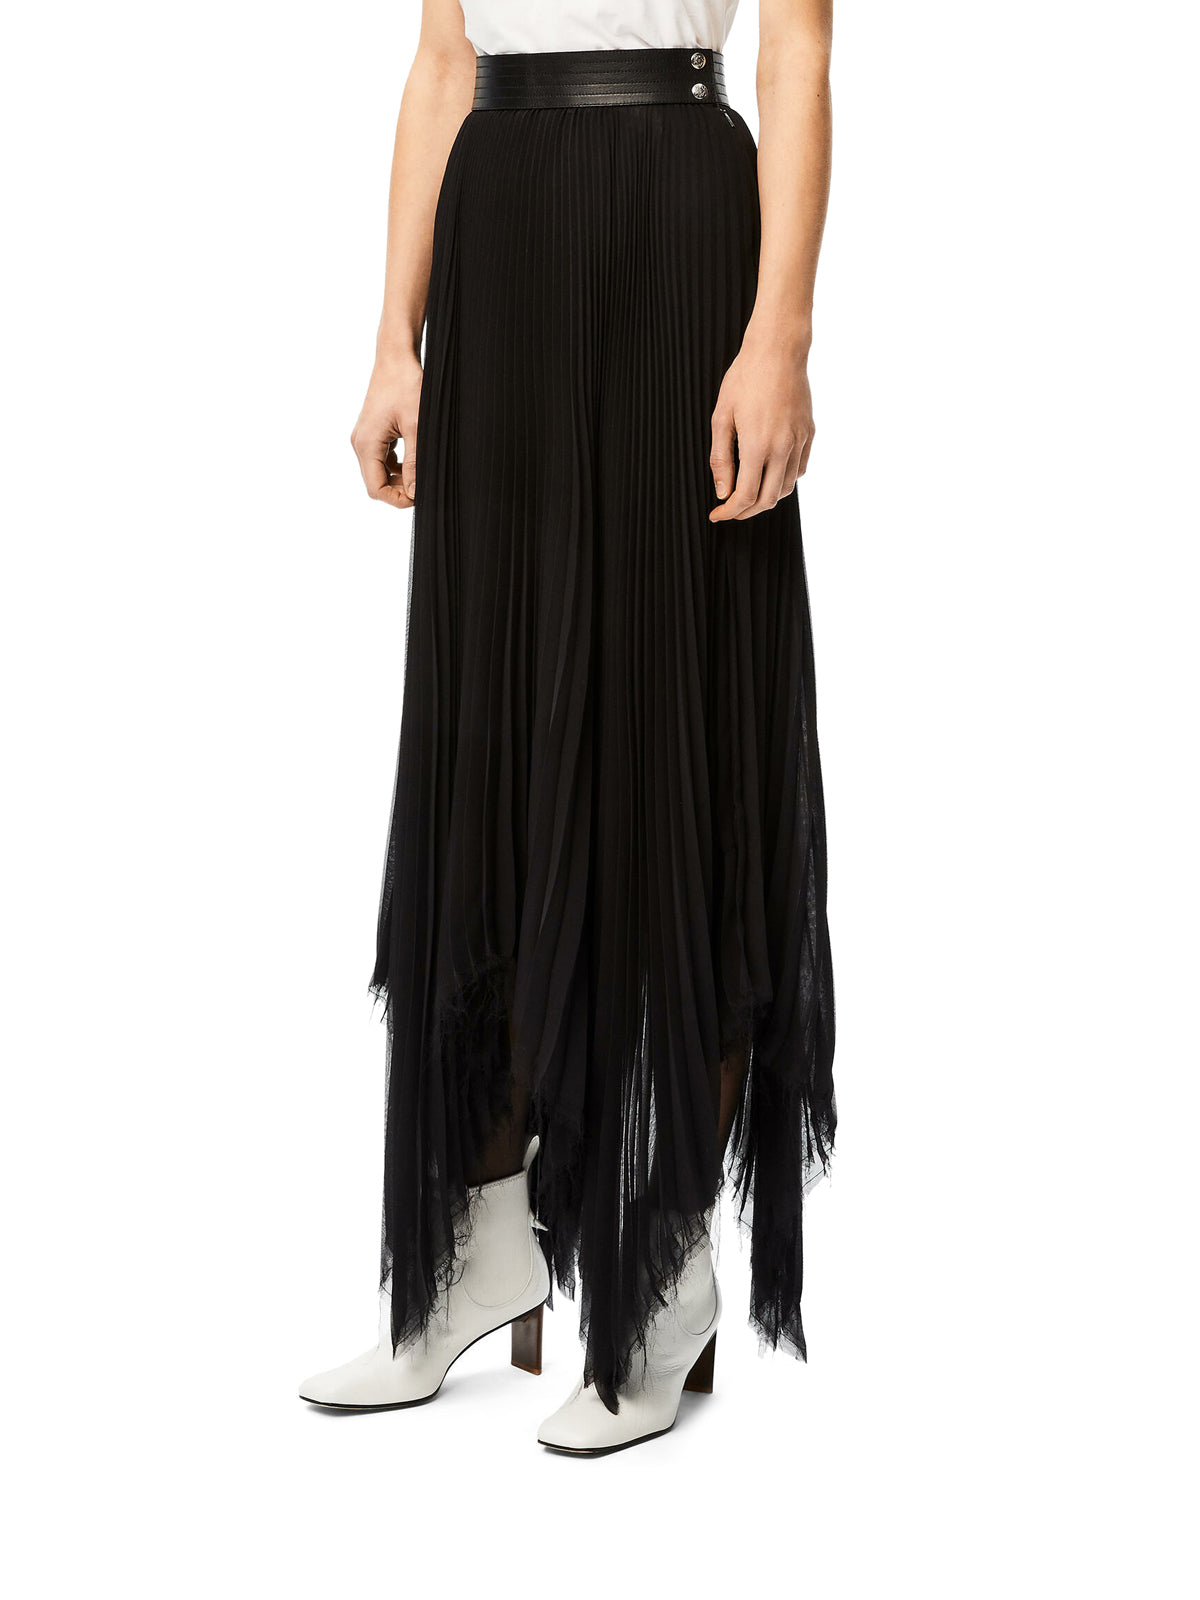 asymmetric pleated skirt with leather belt